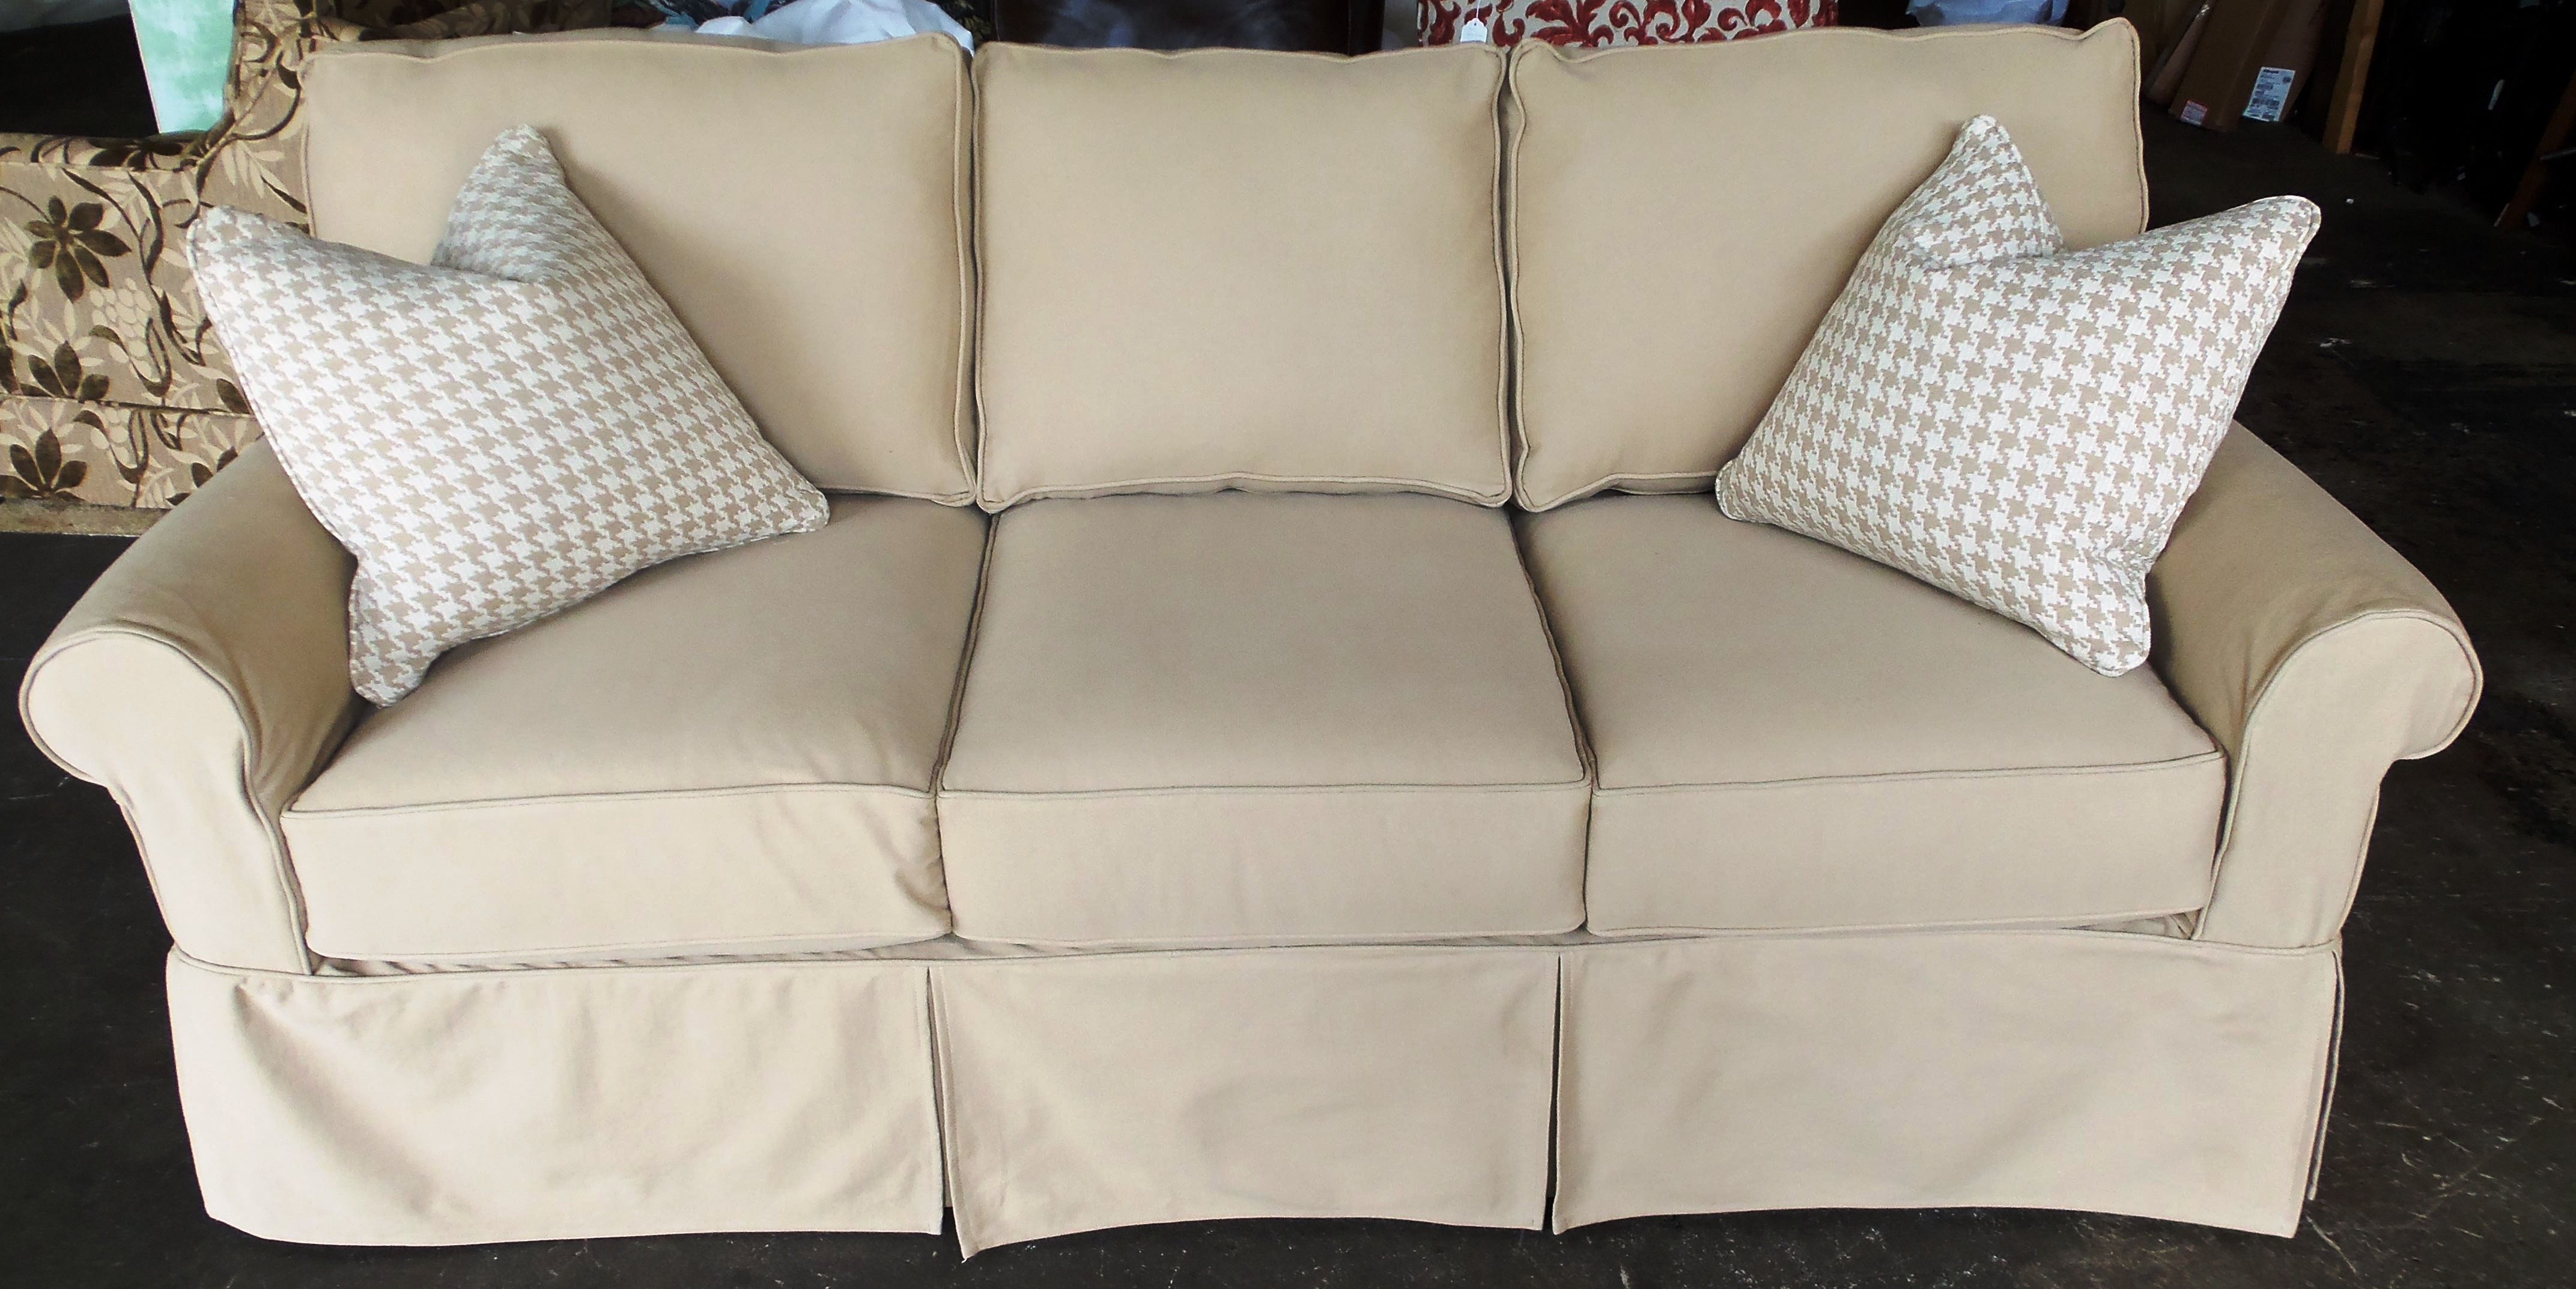 Attractive Awesome Slipcover Sofas , Epic Slipcover Sofas 27 In Modern Sofa Ideas With Slipcover  Sofas ,